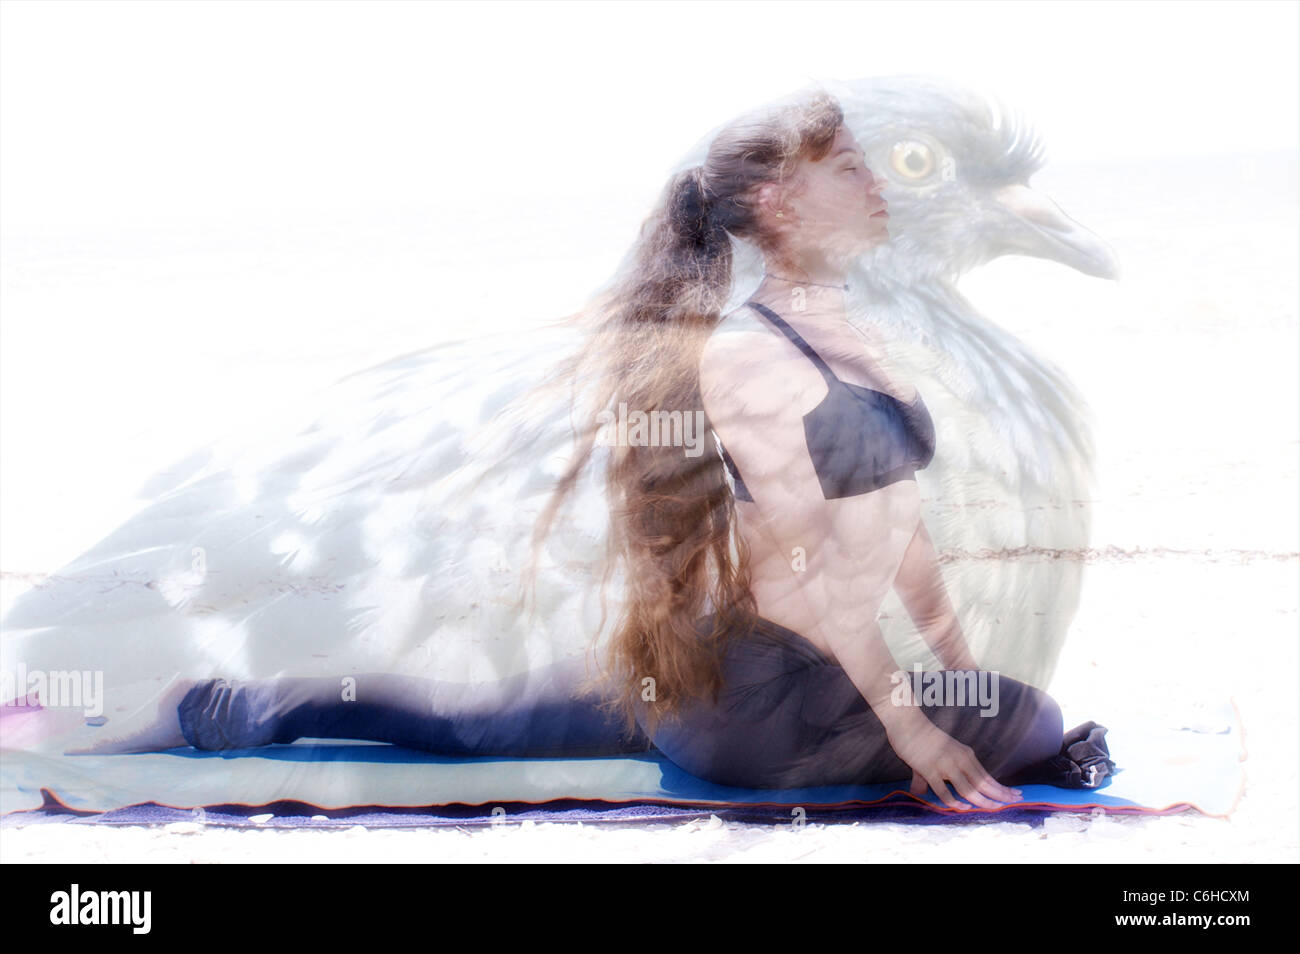 A woman is in yoga pigeon pose with image of actual pigeon superimposed - Stock Image